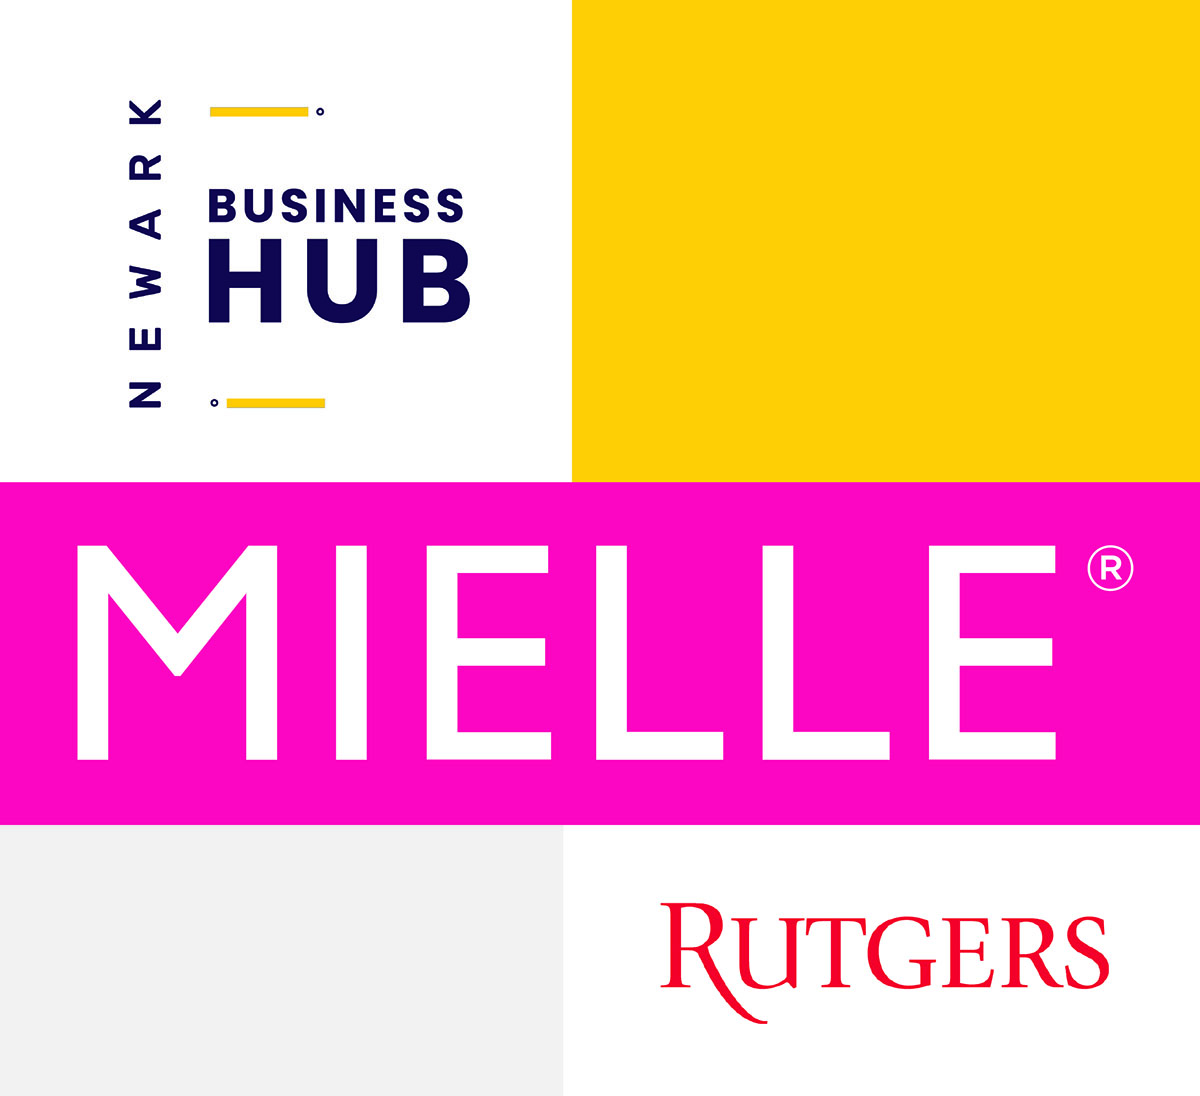 Newark Business Hub Mielle Rutgers logo for business course certificate